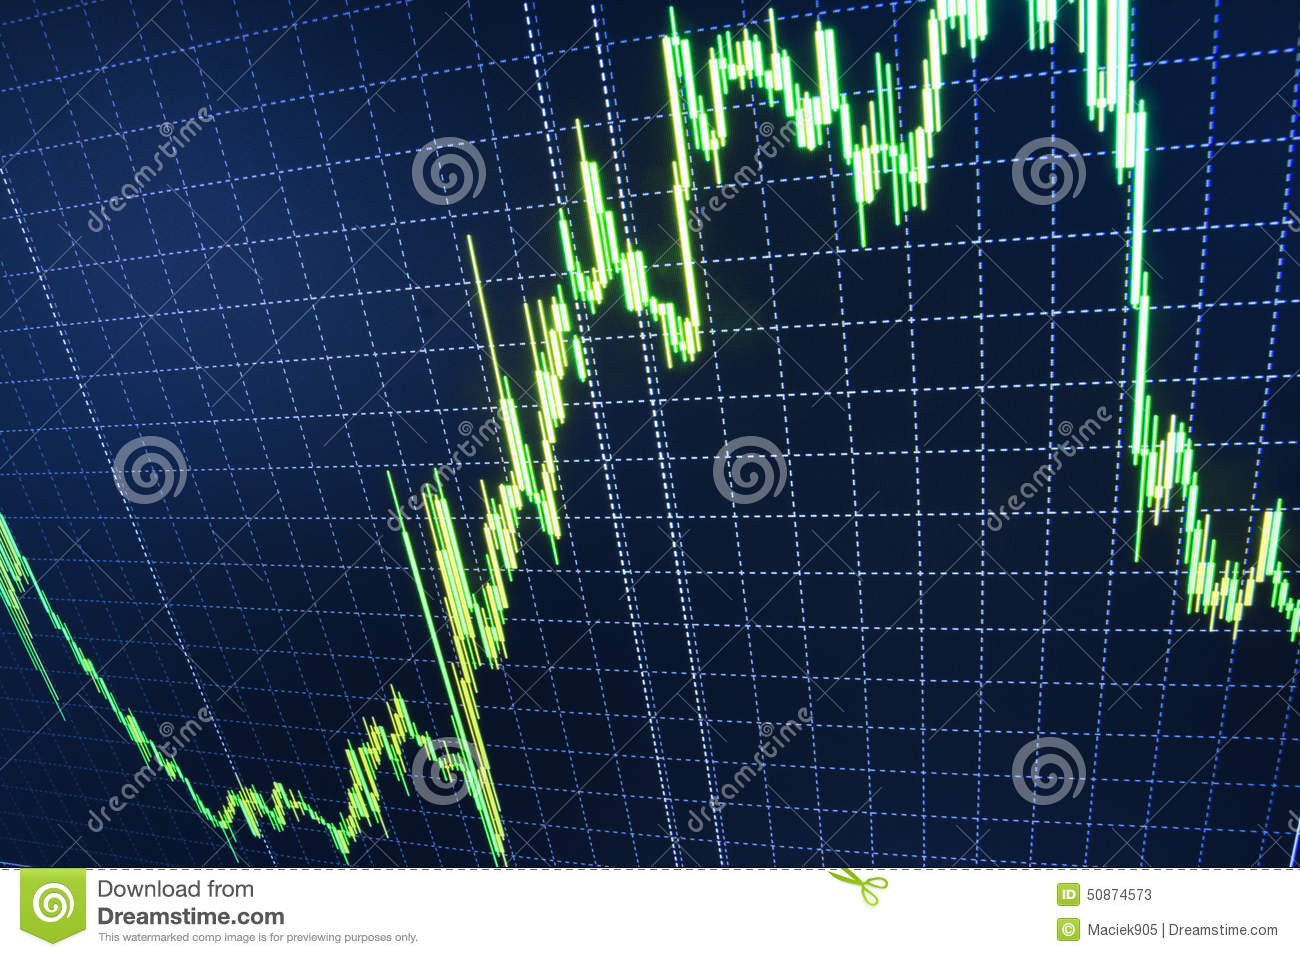 Stock market quotes graph.